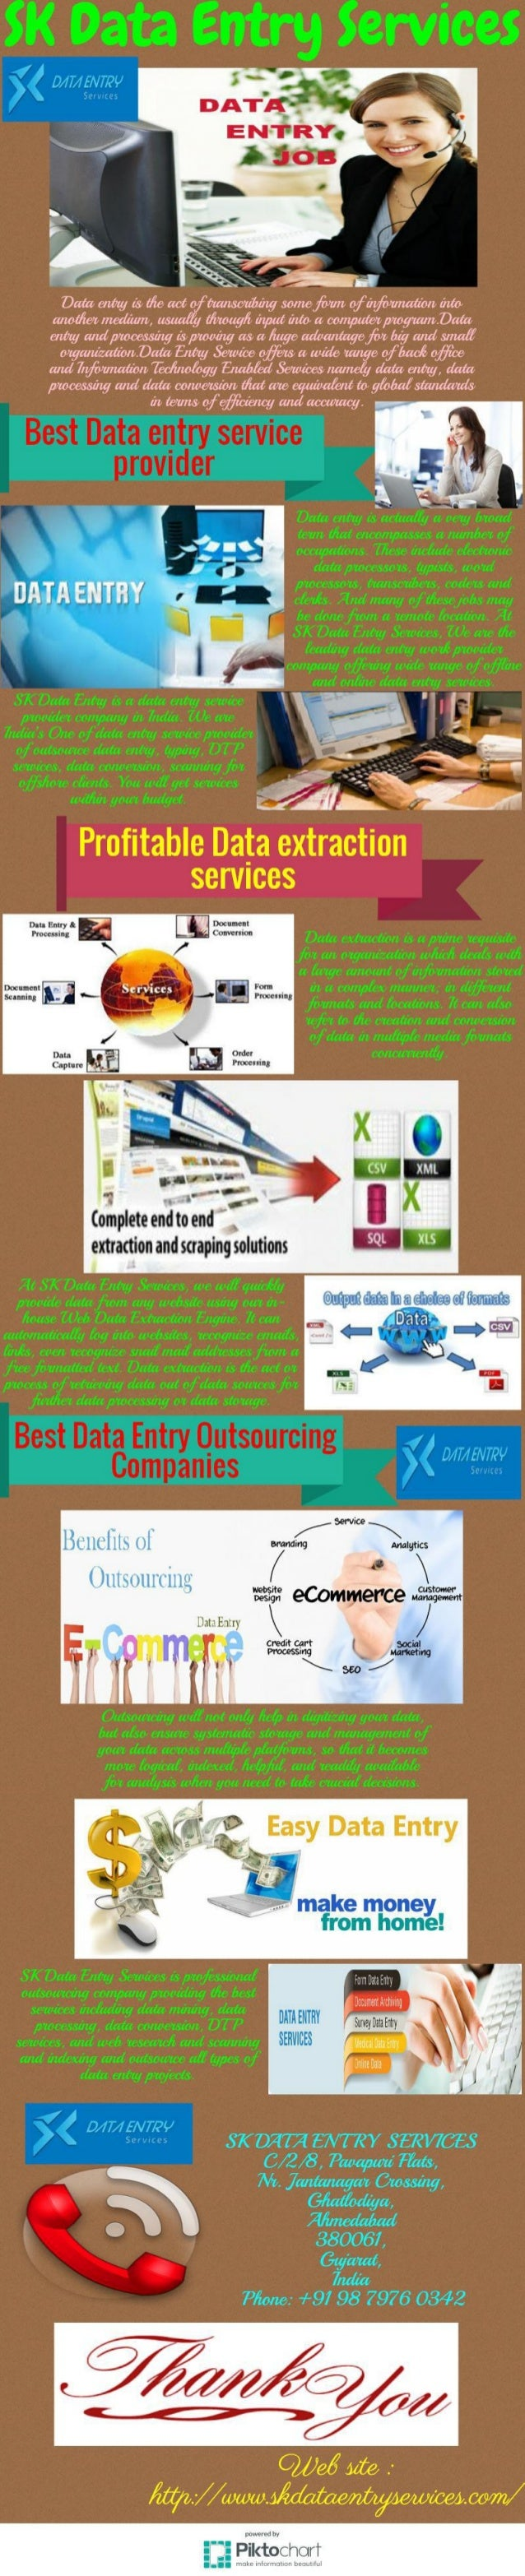 data entry service provider As a unique and popular data entry service provider company in india our motto is to provide fast accurate and best quality data entry service with reasonable price.